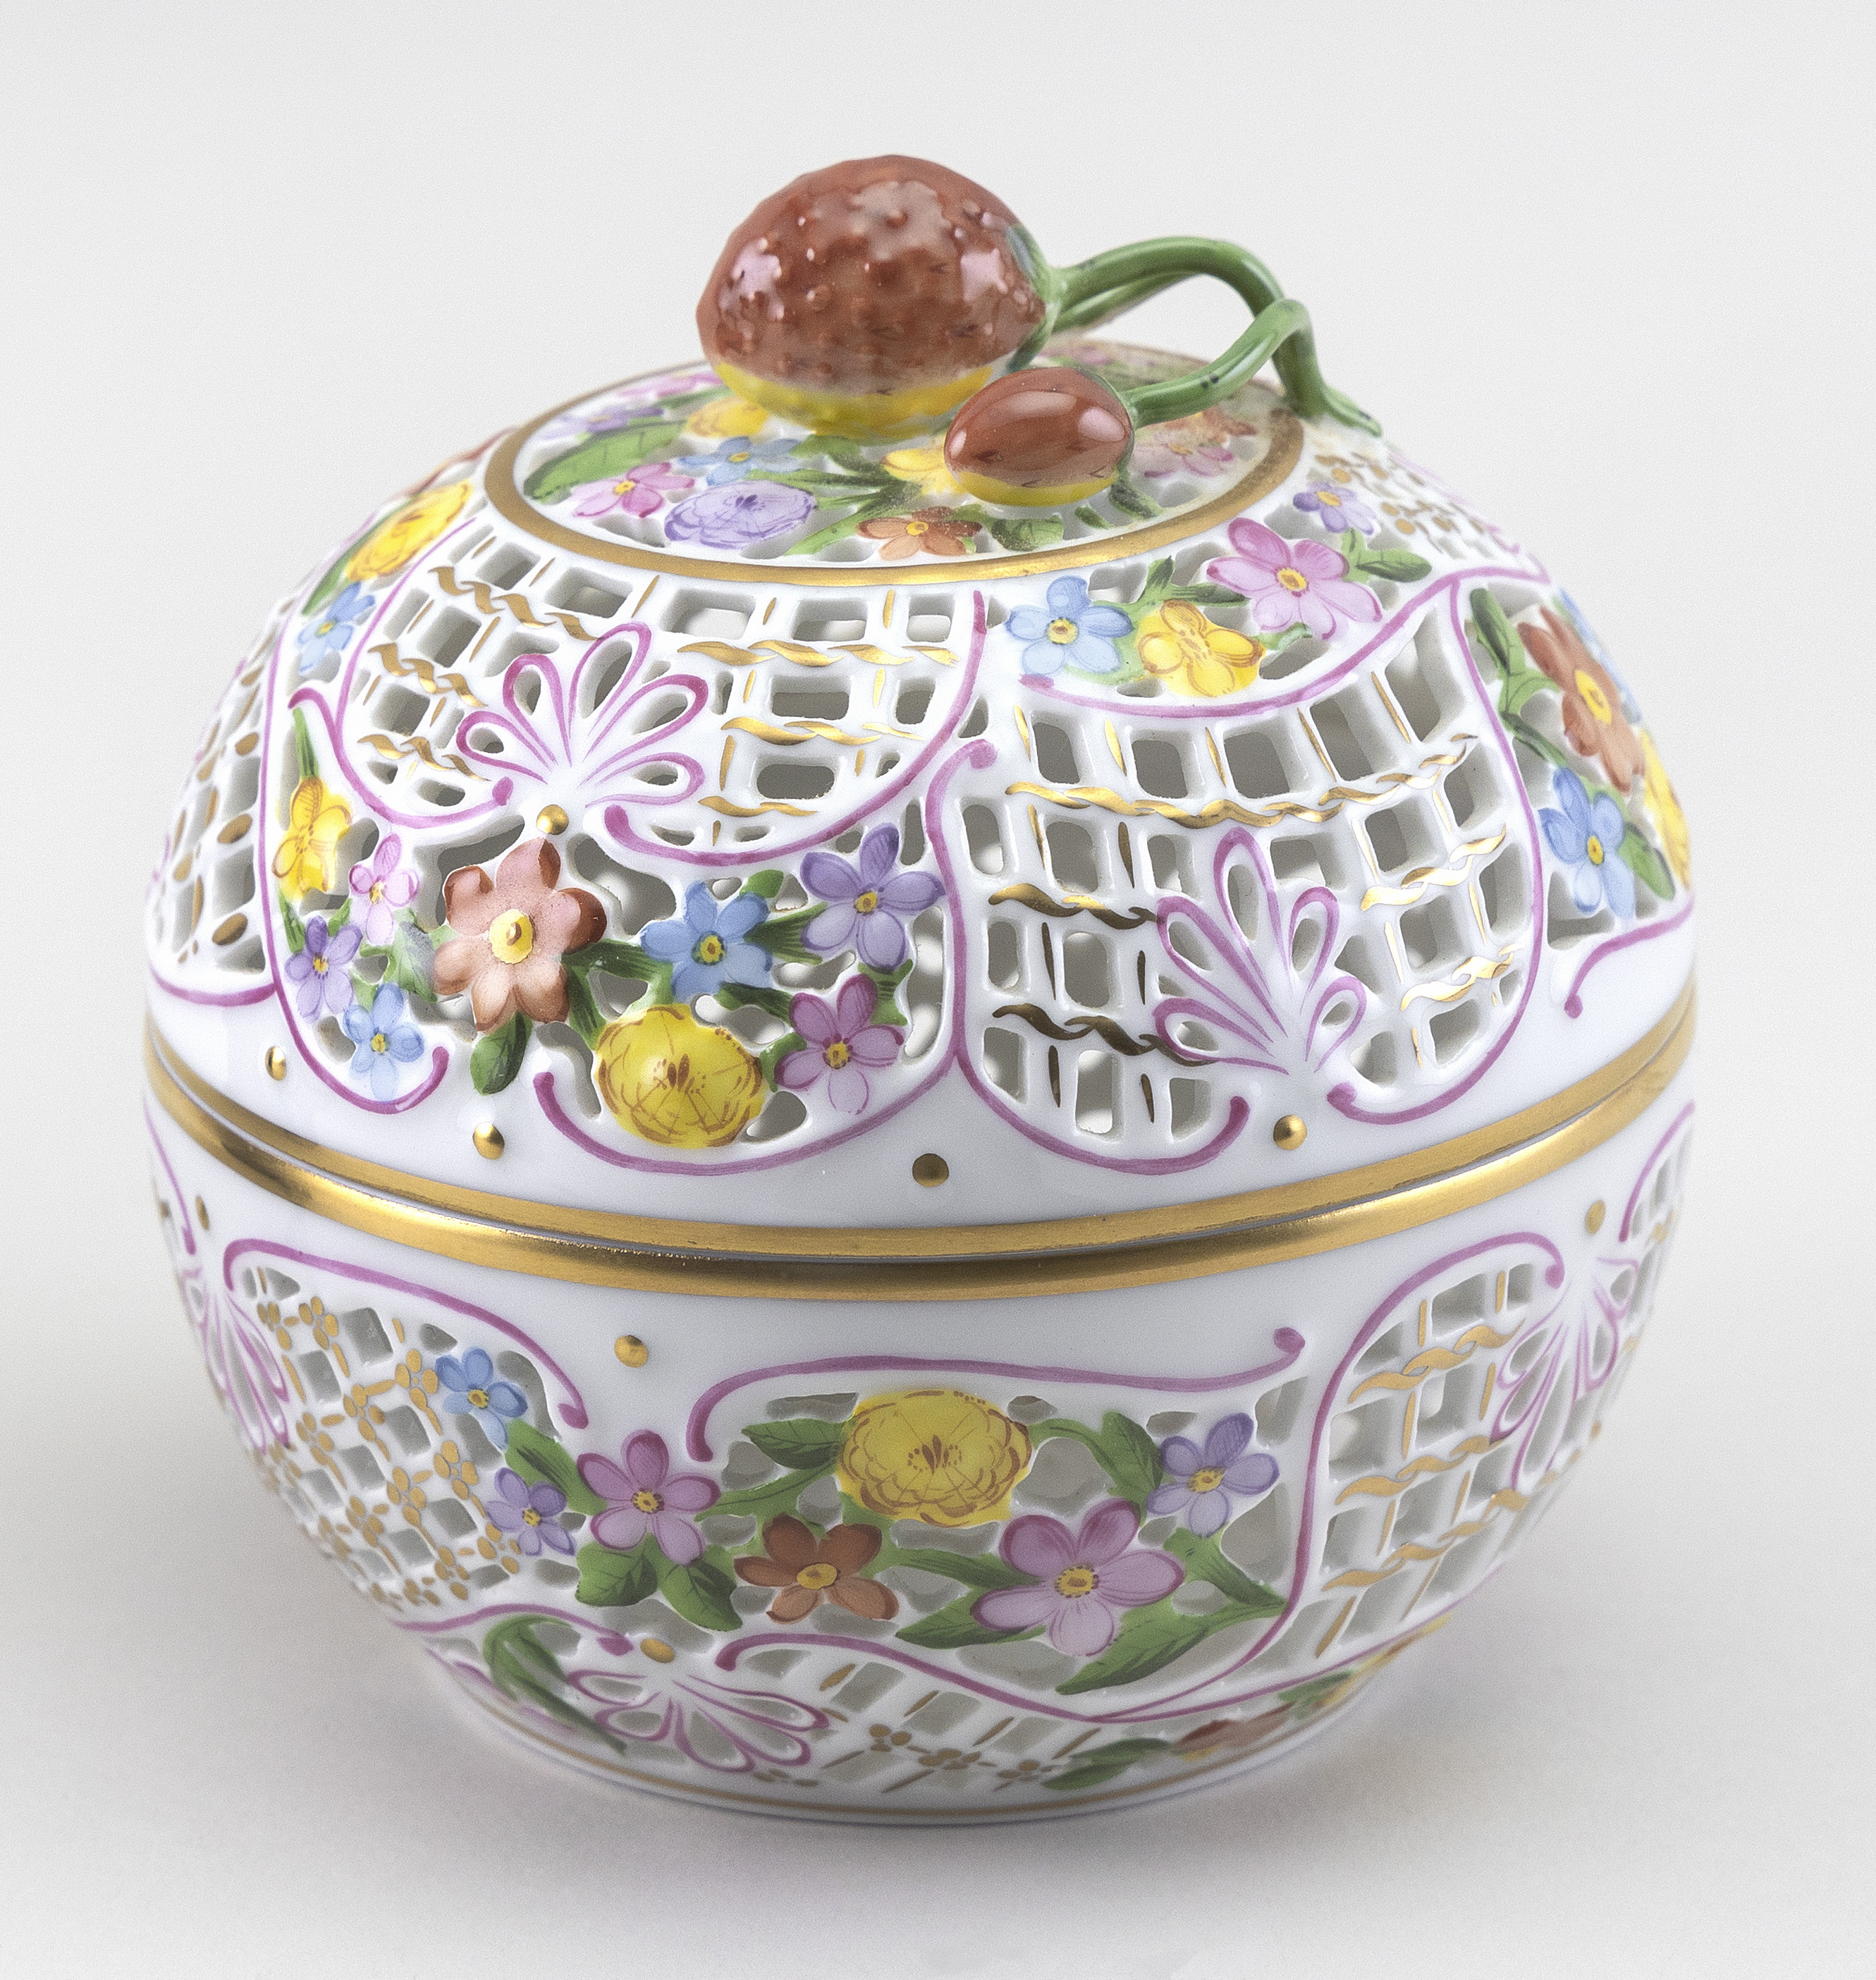 """HEREND PORCELAIN BONBONNIERE Hungary, 20th Century Height 4.75""""."""